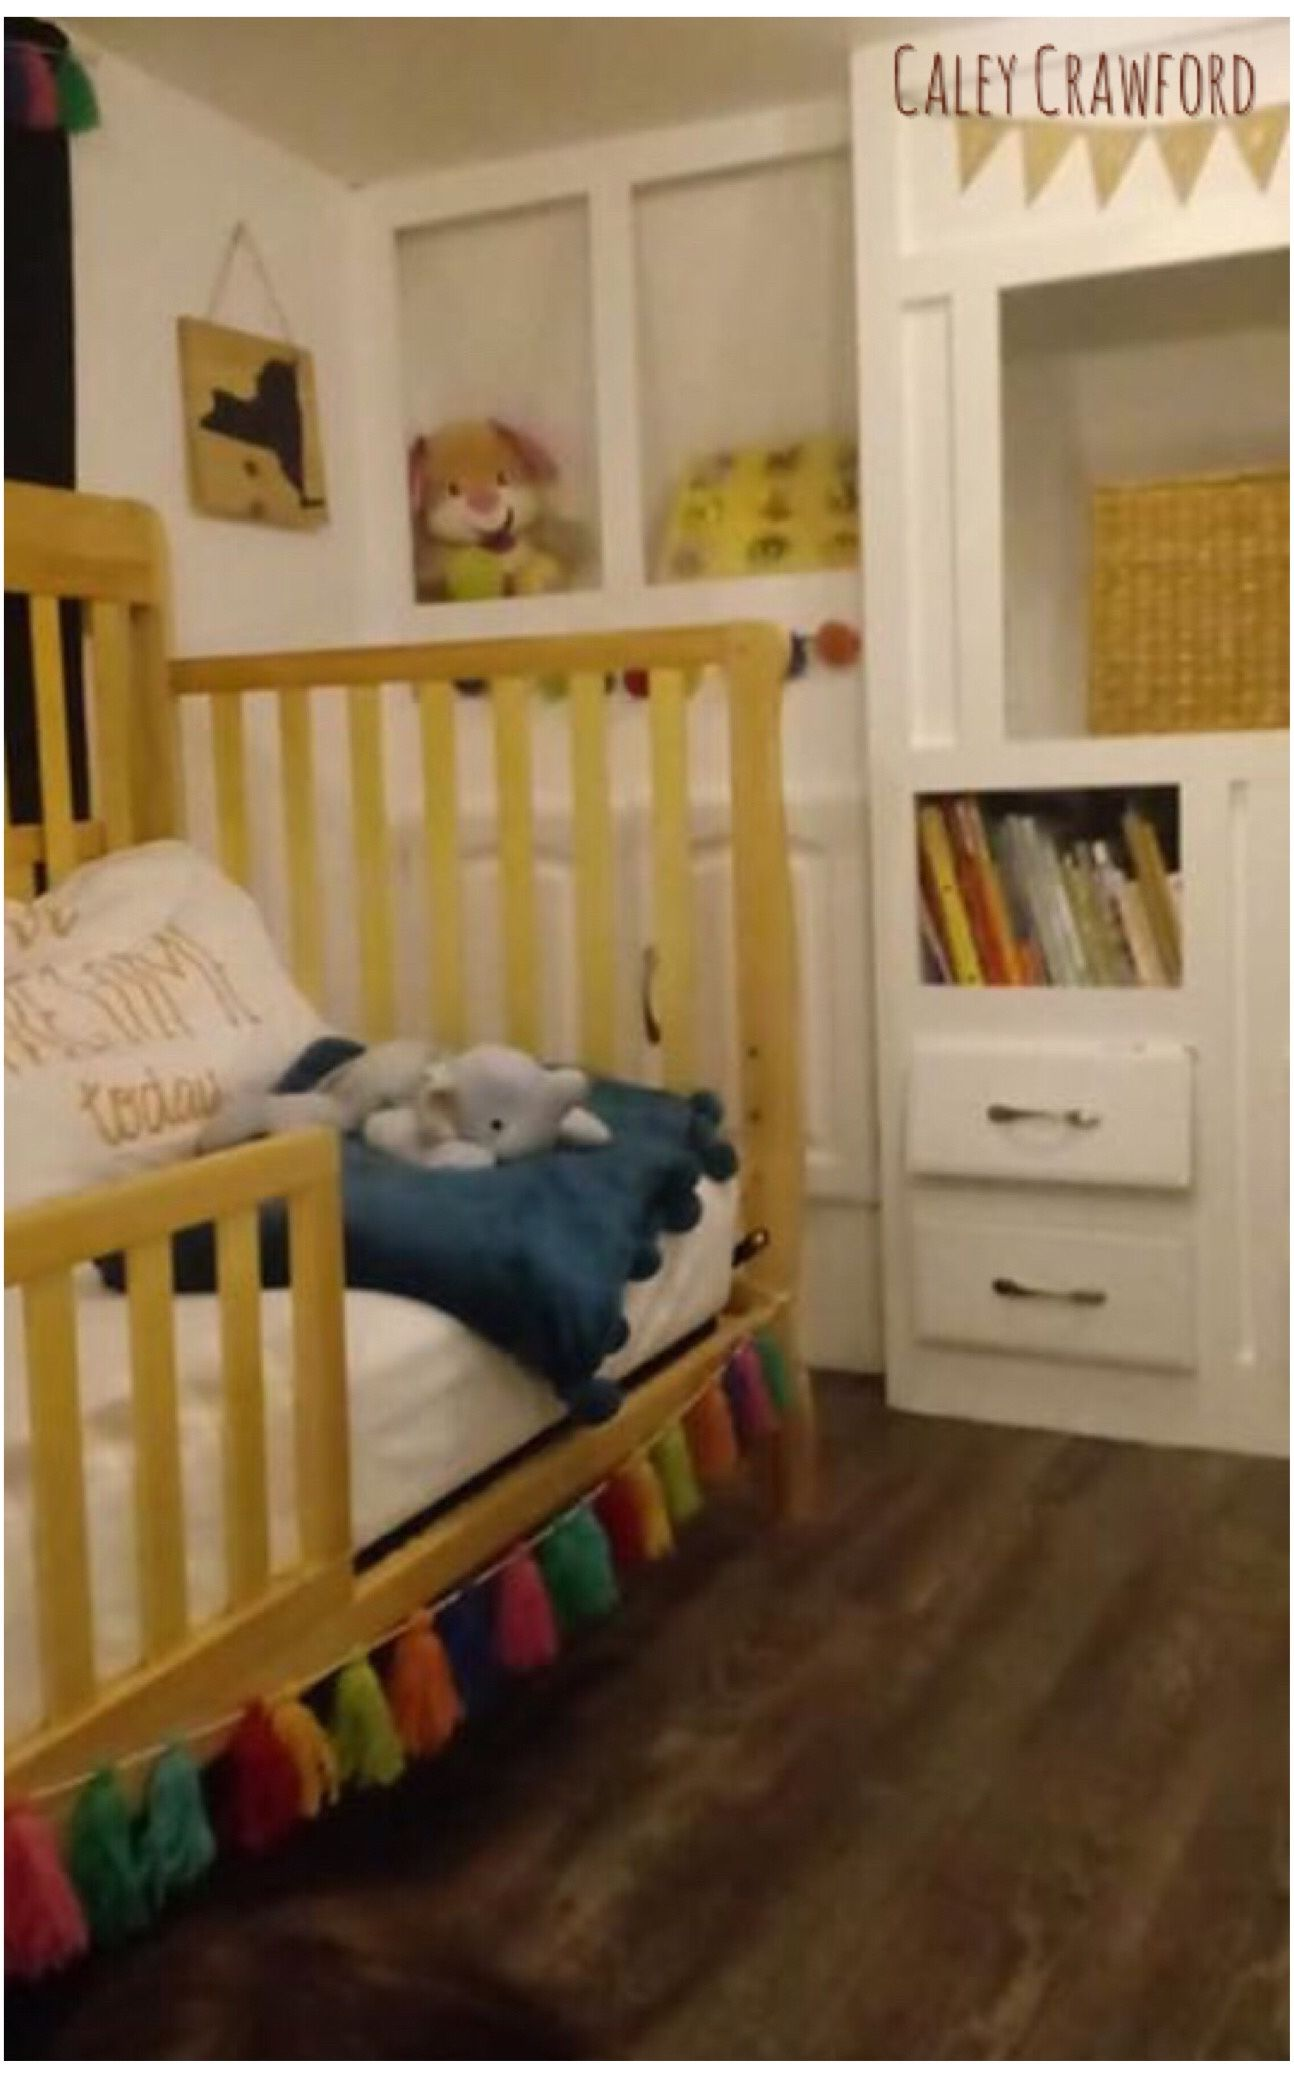 Toddler room in bunkhouse of RV.   Rv floor plans, Bunkhouse ... on railroad stove, railroad pickup truck, railroad camp, railroad roundhouse, railroad dining car, railroad control room, railroad shed,